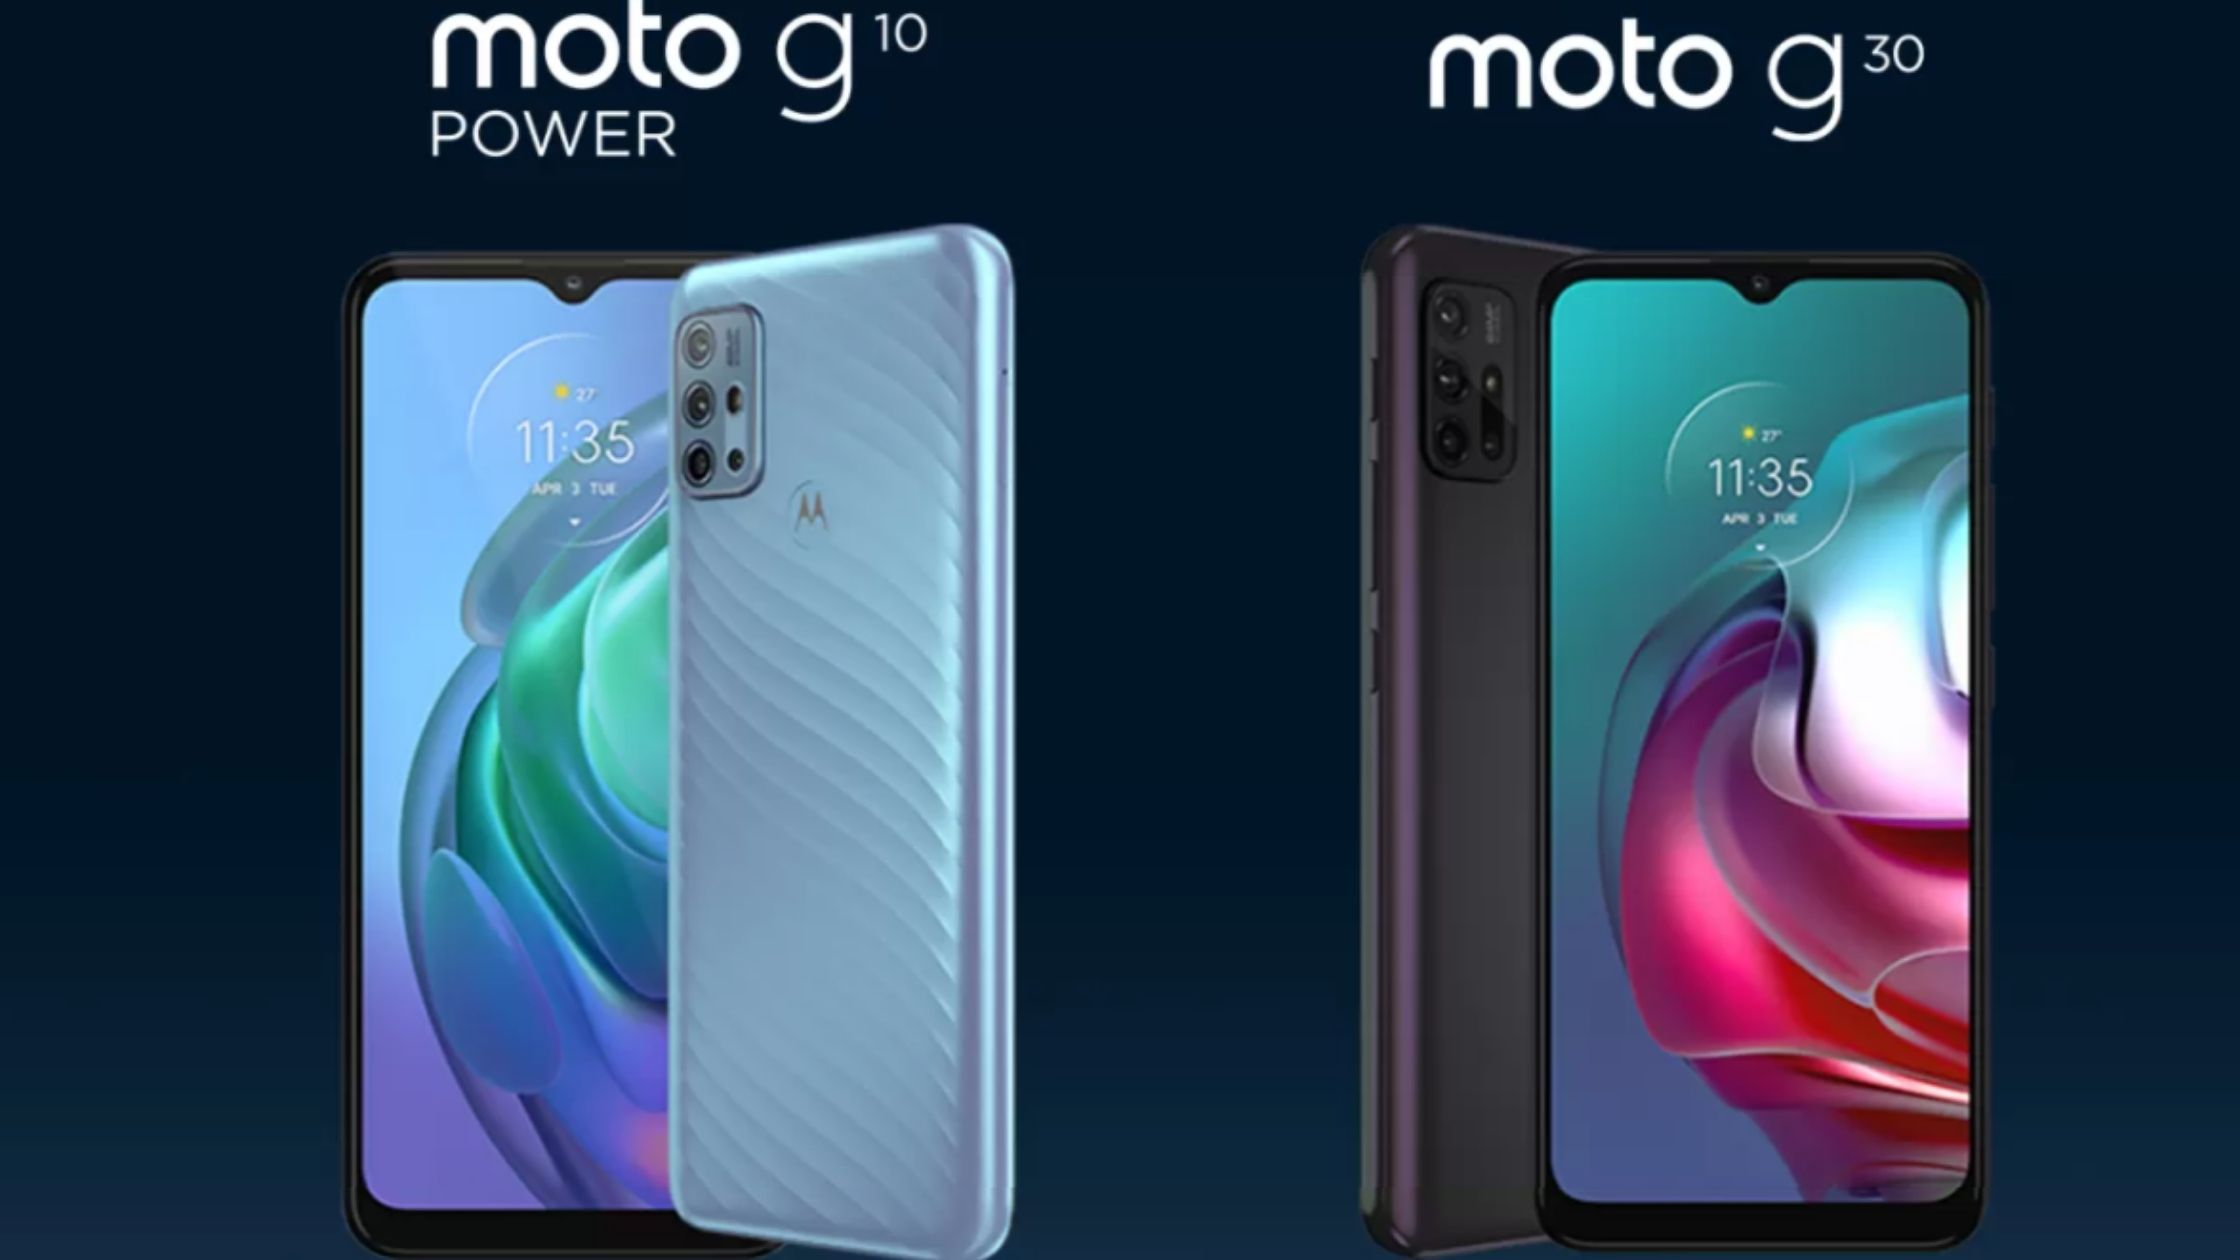 Moto G30 and Moto G10 Power budget phones launched in India